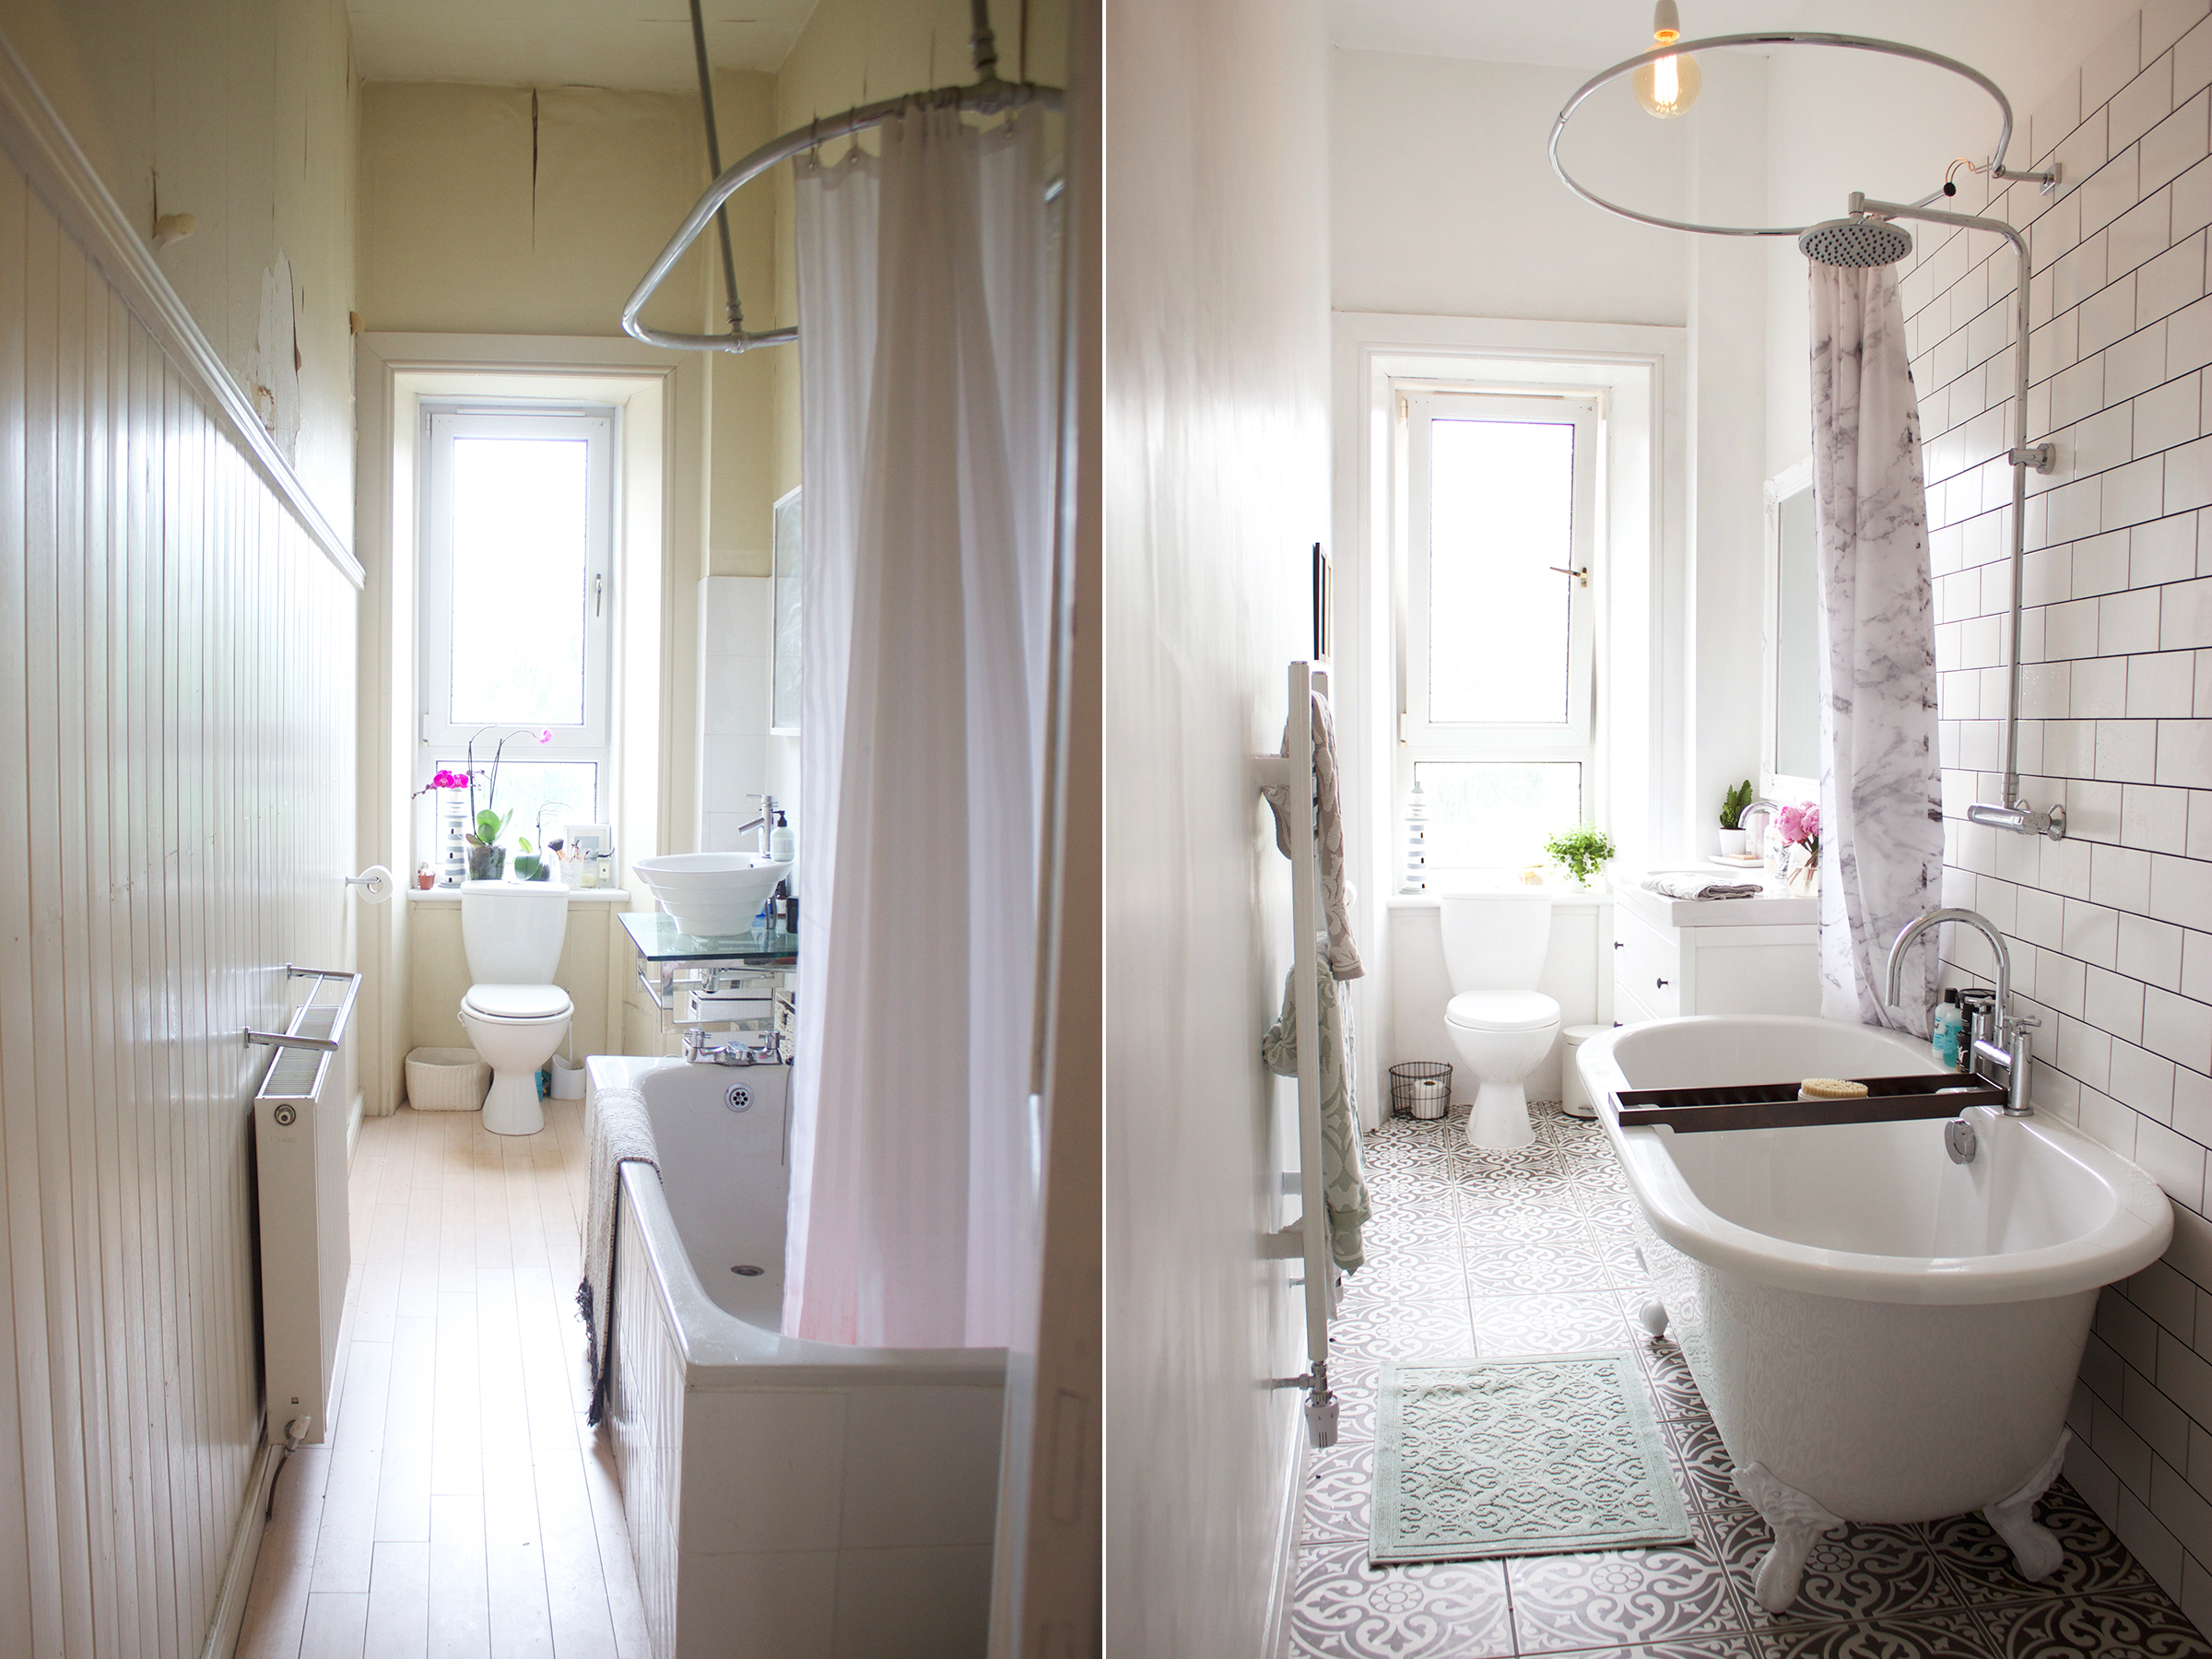 bathroom makeovers before and after pictures a bathroom makeover before amp after kate la vie 24912